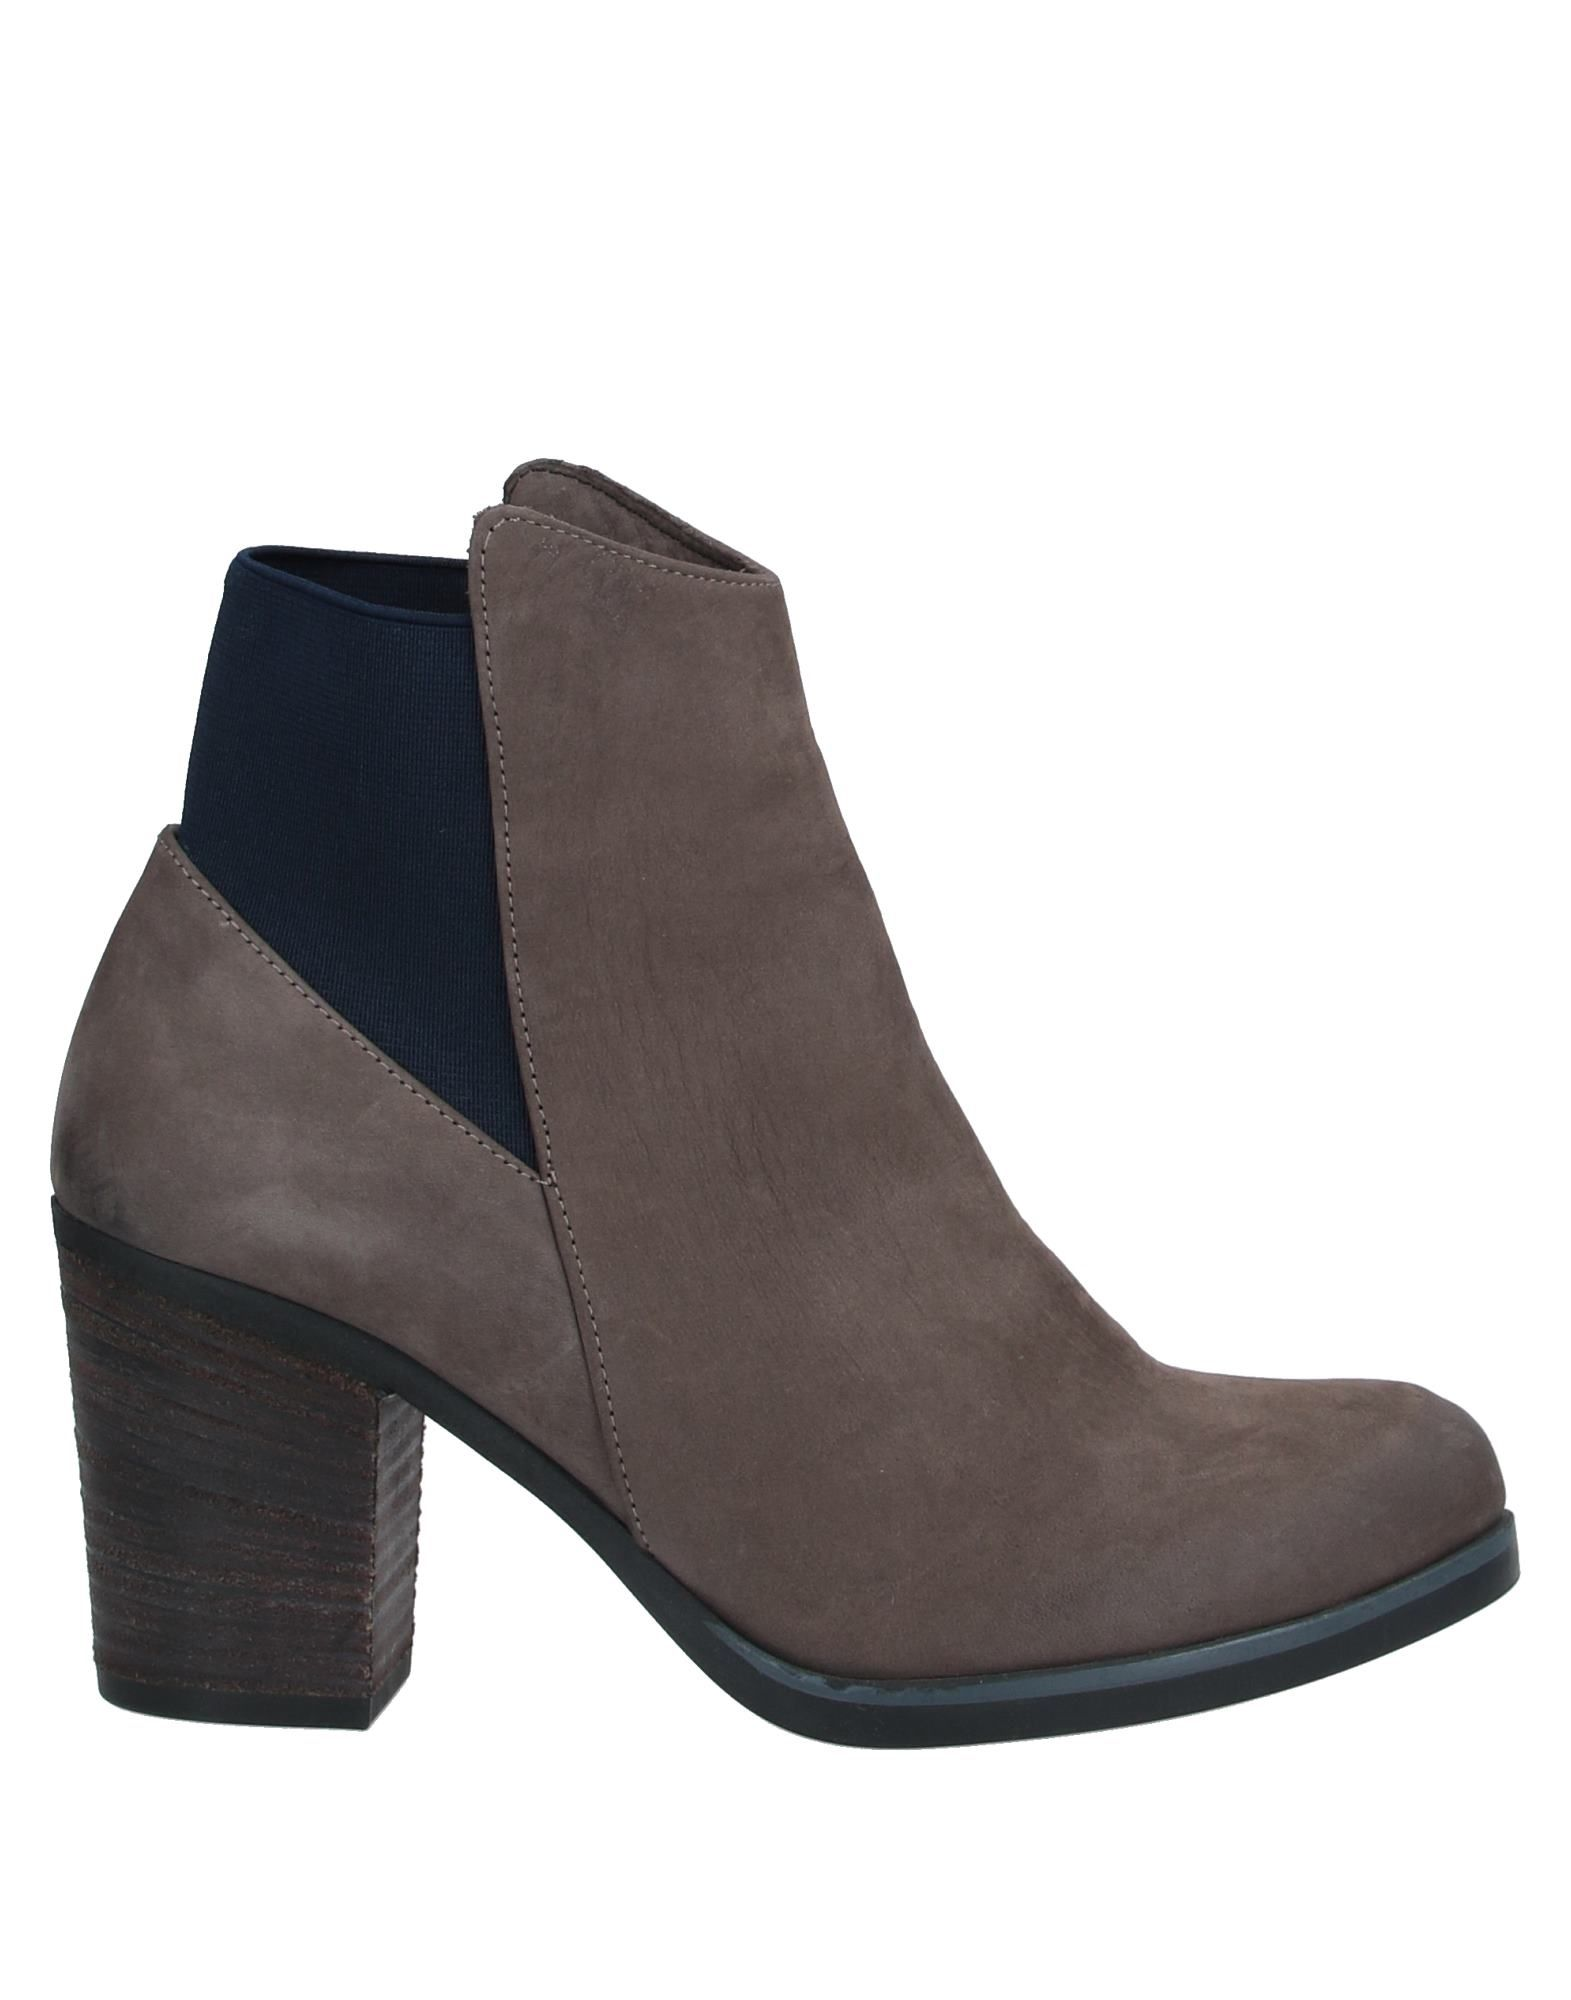 BUENO Ankle boots. leather, nubuck, no appliqués, solid color, elasticized gores, round toeline, geometric heel, leather lining, rubber sole, contains non-textile parts of animal origin. Soft Leather